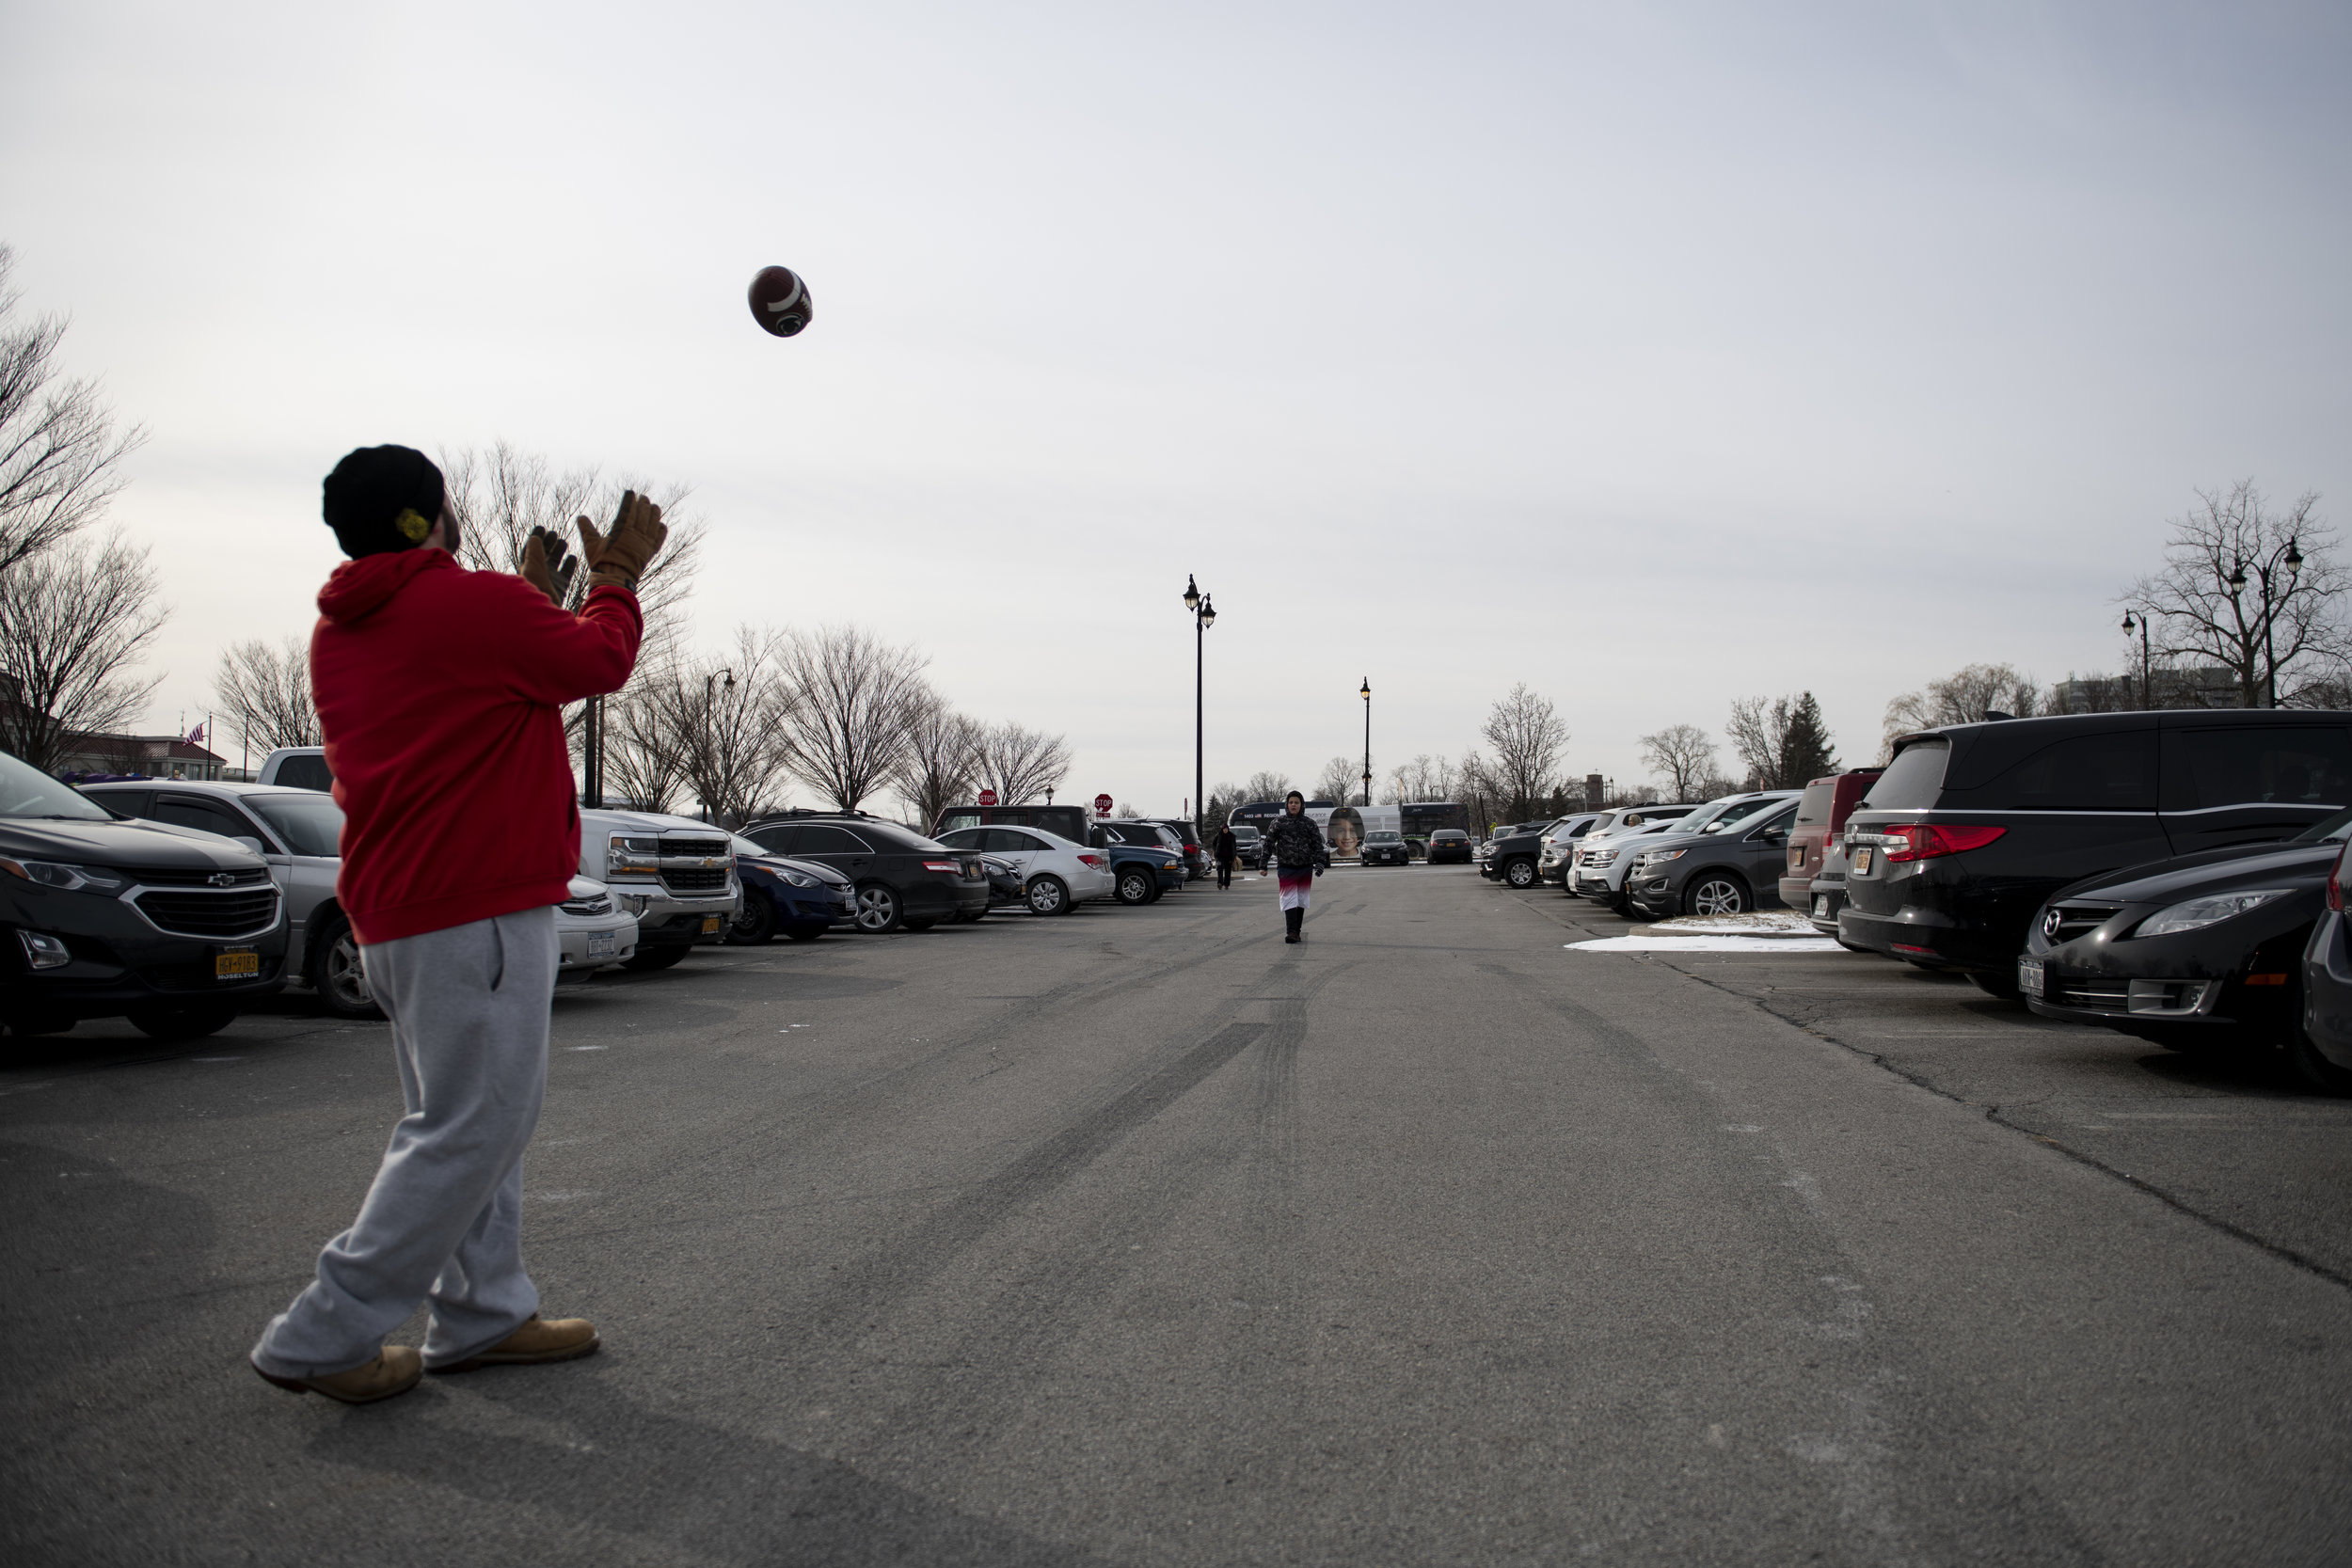 Anthony Patta catches a football from Alex Entz, age 9, in the parking-lot prior to the 2019 Polar Plunge at Ontario Beach Park in Rochester, N.Y. Feb. 10, 2019. The 2019 Polar Plunge raised over $250,000 for the Special Olympic community.